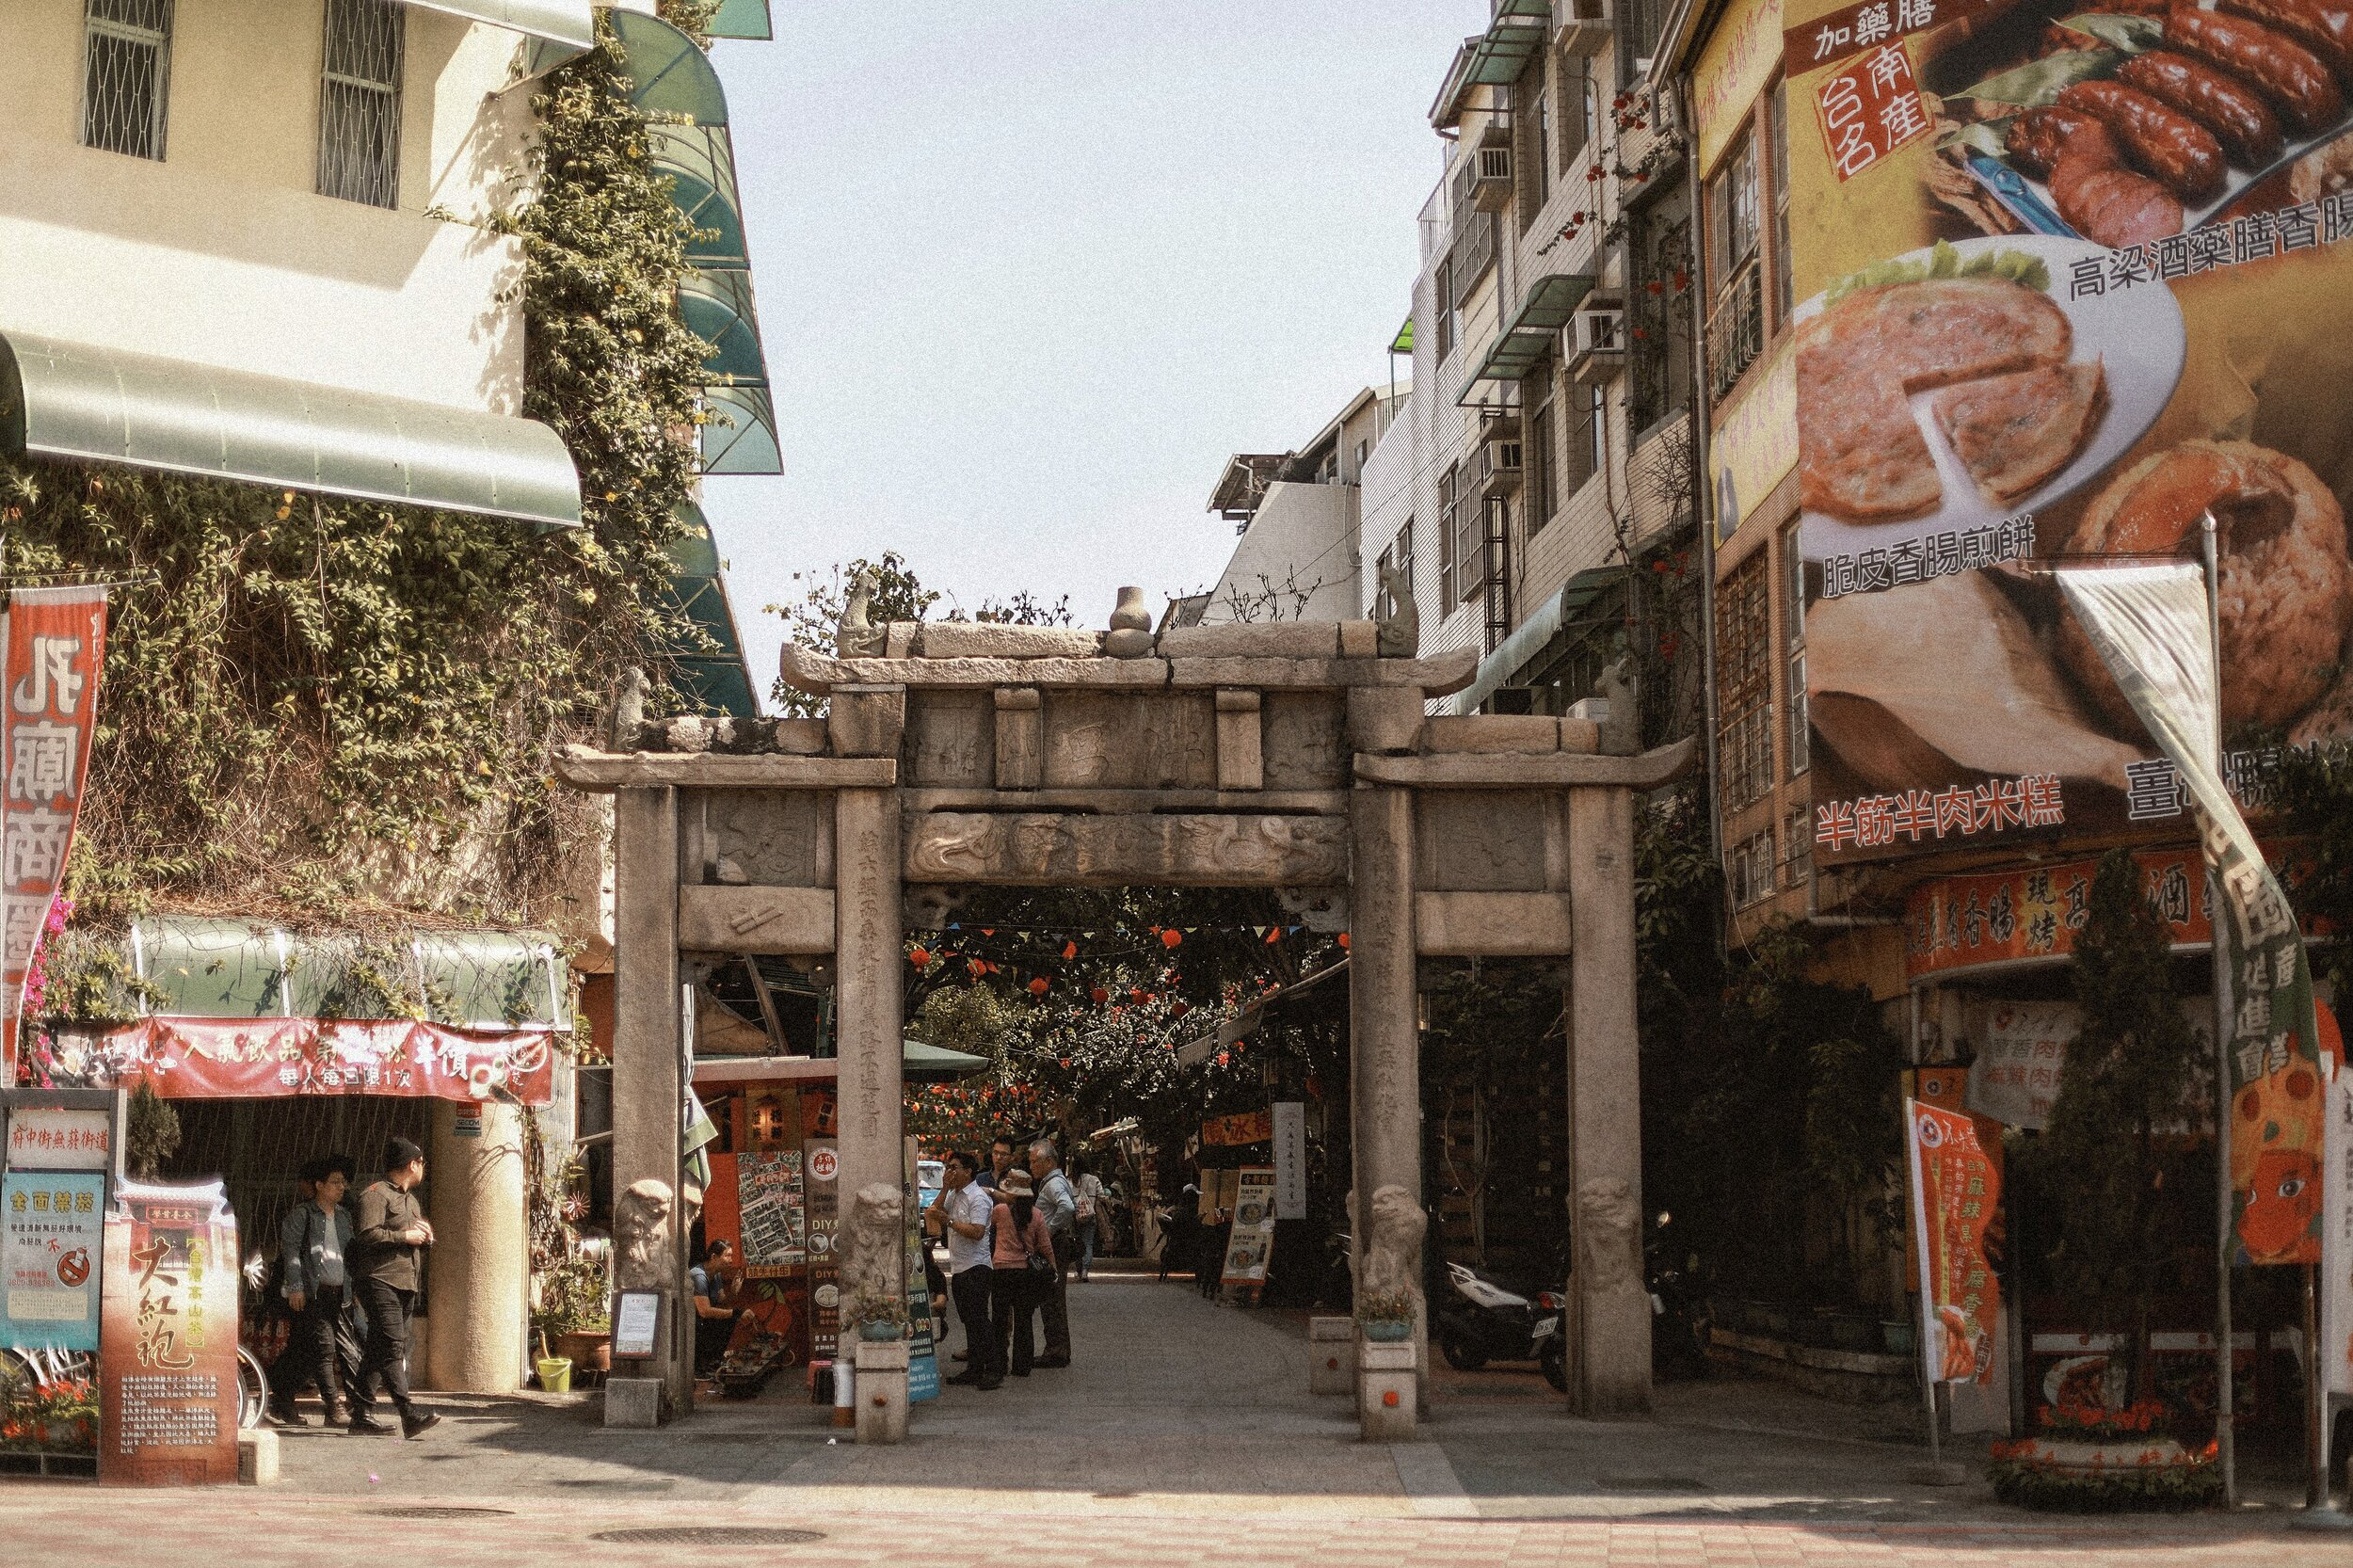 The Pao Gao stone arch was originally the outermost gateway to the temple. Now separated from the temple compound, it marks the entryway into the pedestrianized  Fuzhong Street , which bustles with cafes and restaurants.